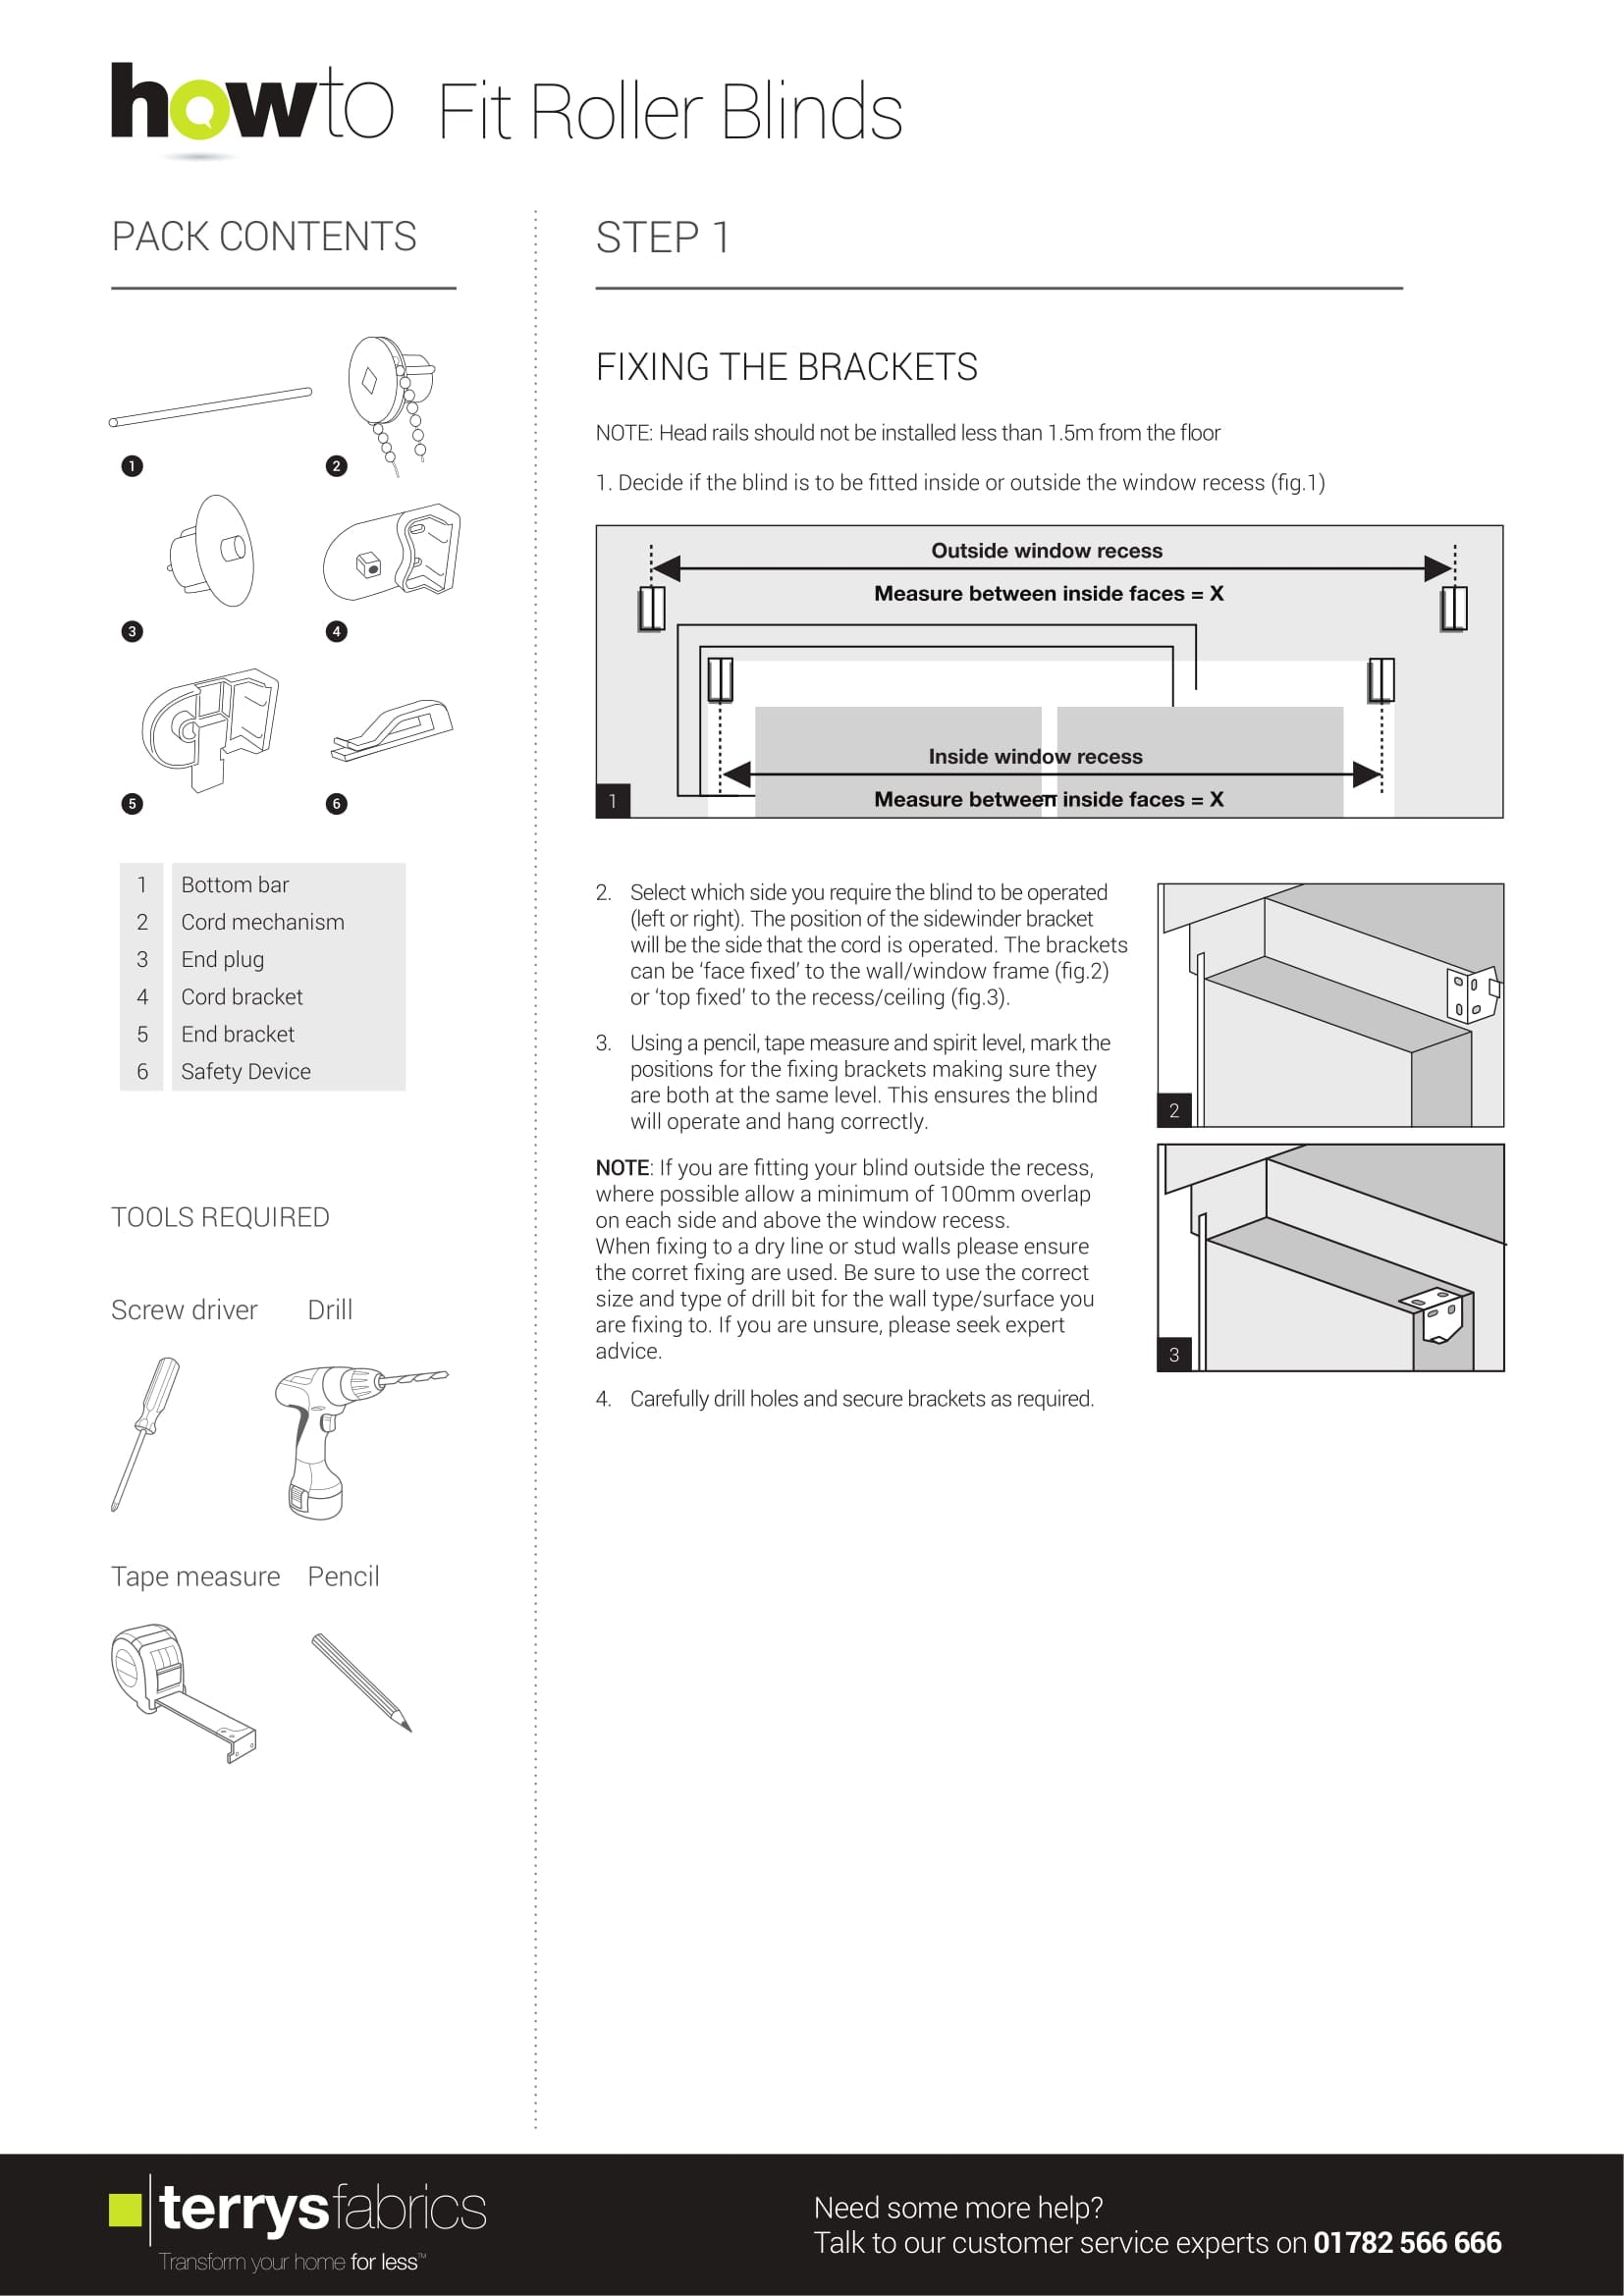 Sunflex Roller Blind Fitting Instructions One